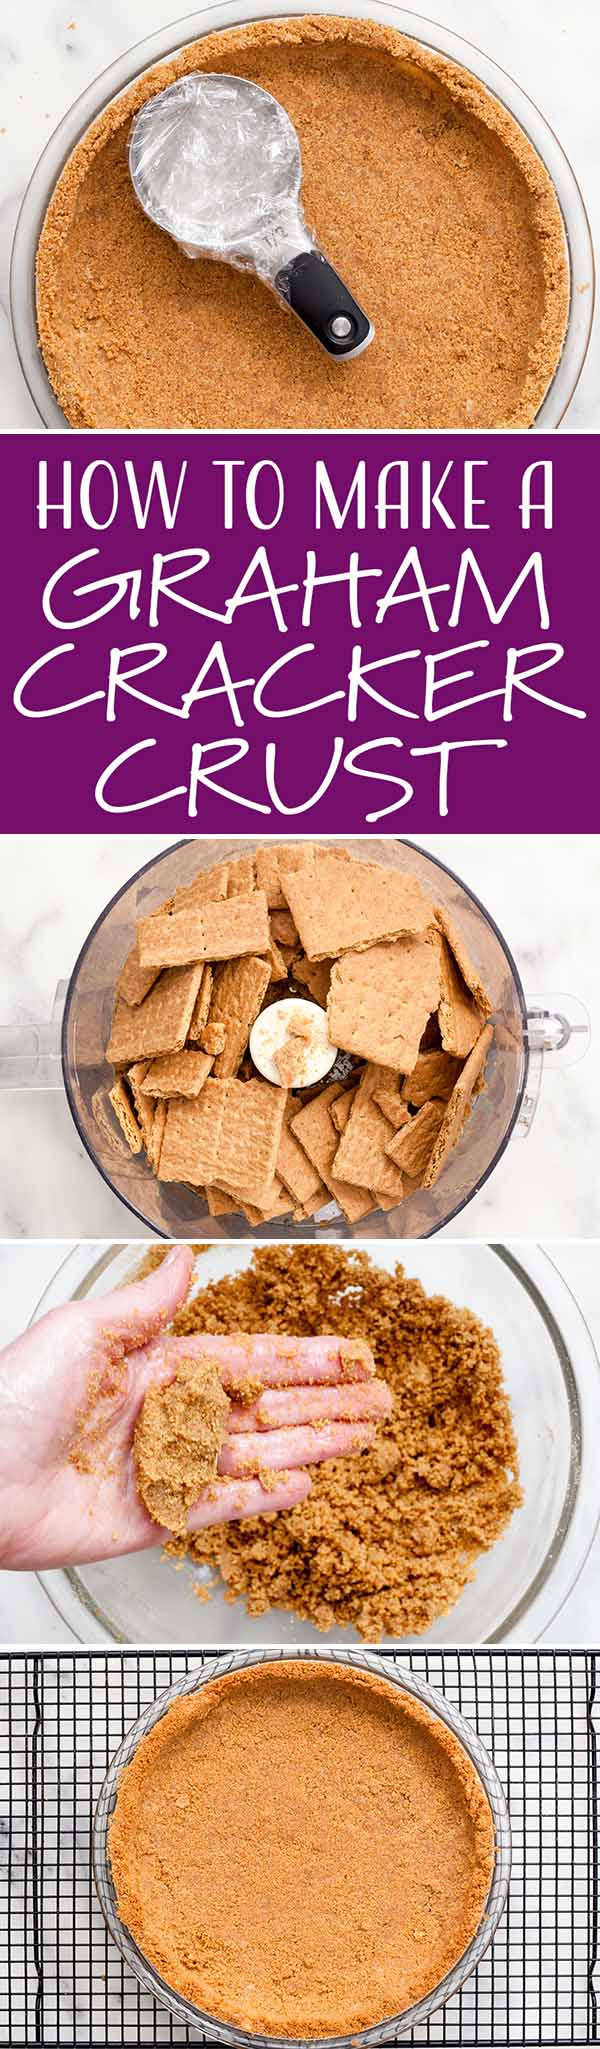 Easy Graham Cracker Crust #homemadegrahamcrackercrust How to Make a Graham Cracker Crust! It's not hard at all—and it comes together quickly. Use this recipe to make cream pies, key lime pie, cheesecake, or any other pie that could use a graham cracker crust! #grahamcrackercrust #piecrust #pie #simplyrecipes #homemadegrahamcrackercrust